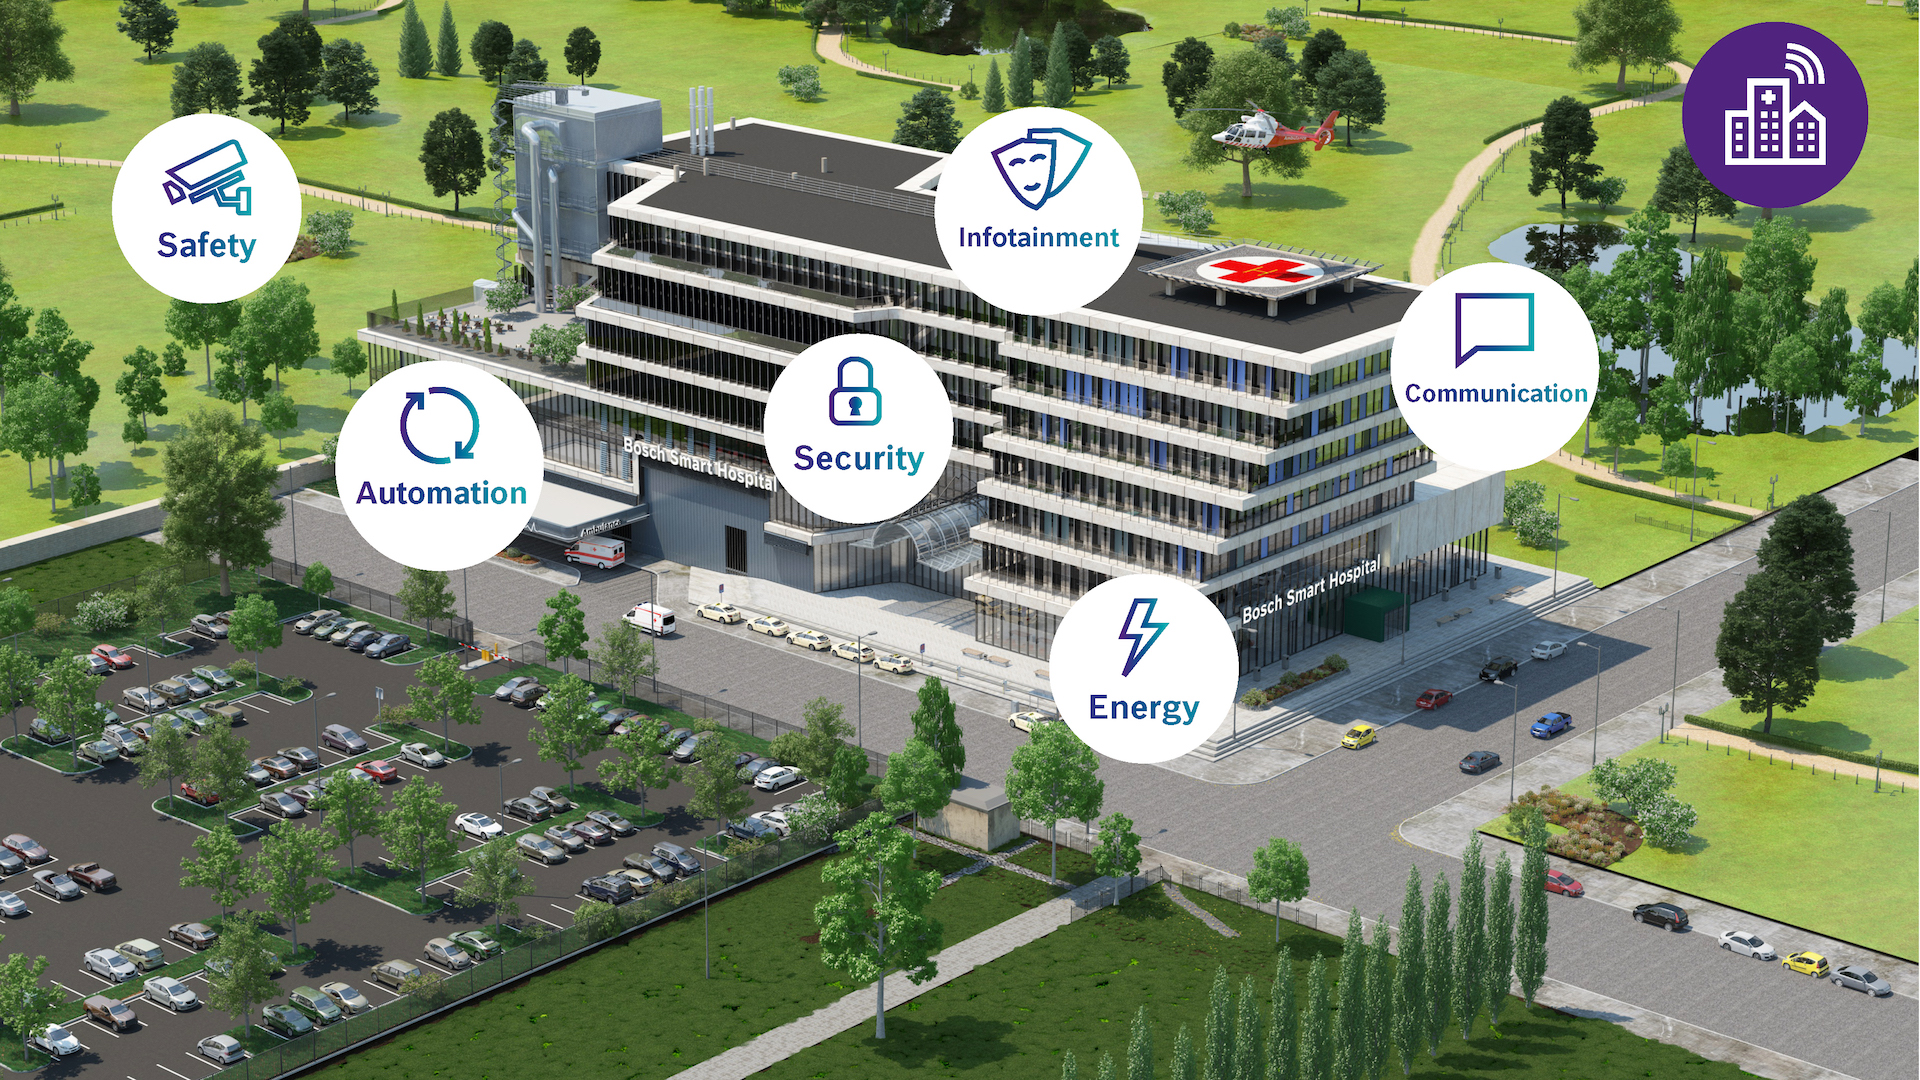 Bosch is making hospitals smart